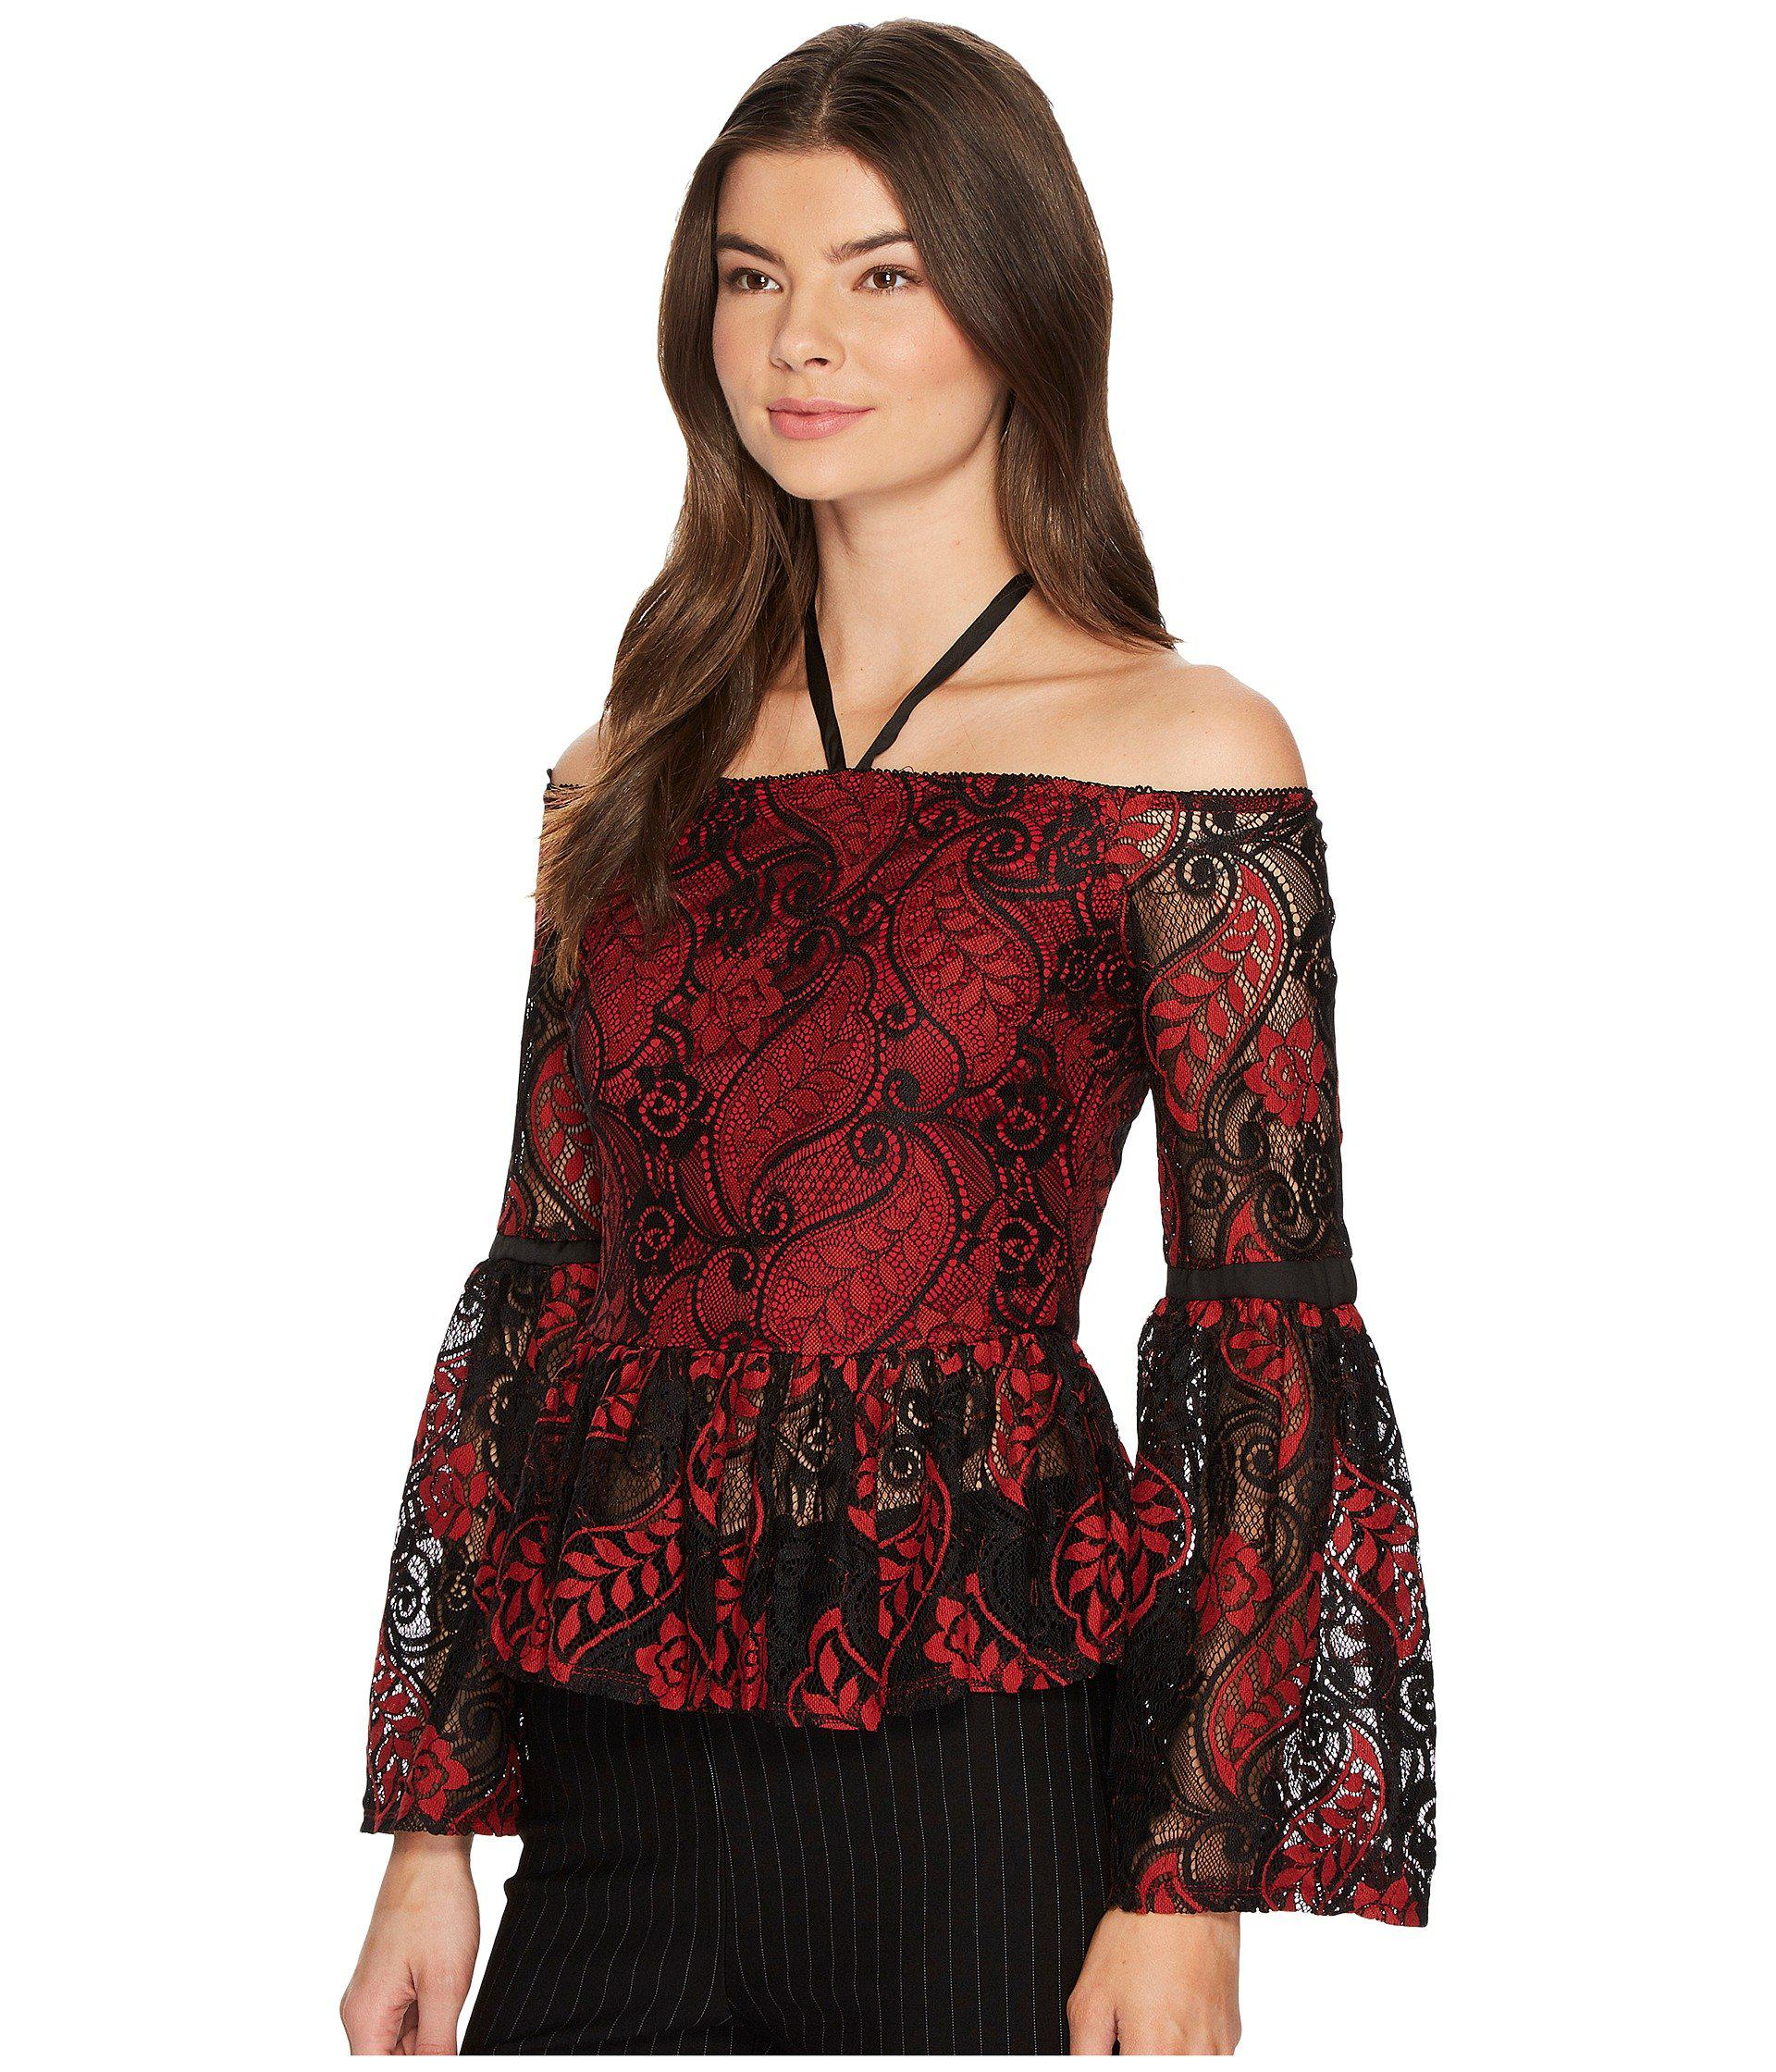 be48f230df0a4 Lyst - Romeo and Juliet Couture Lace Off The Shoulder Top in Red